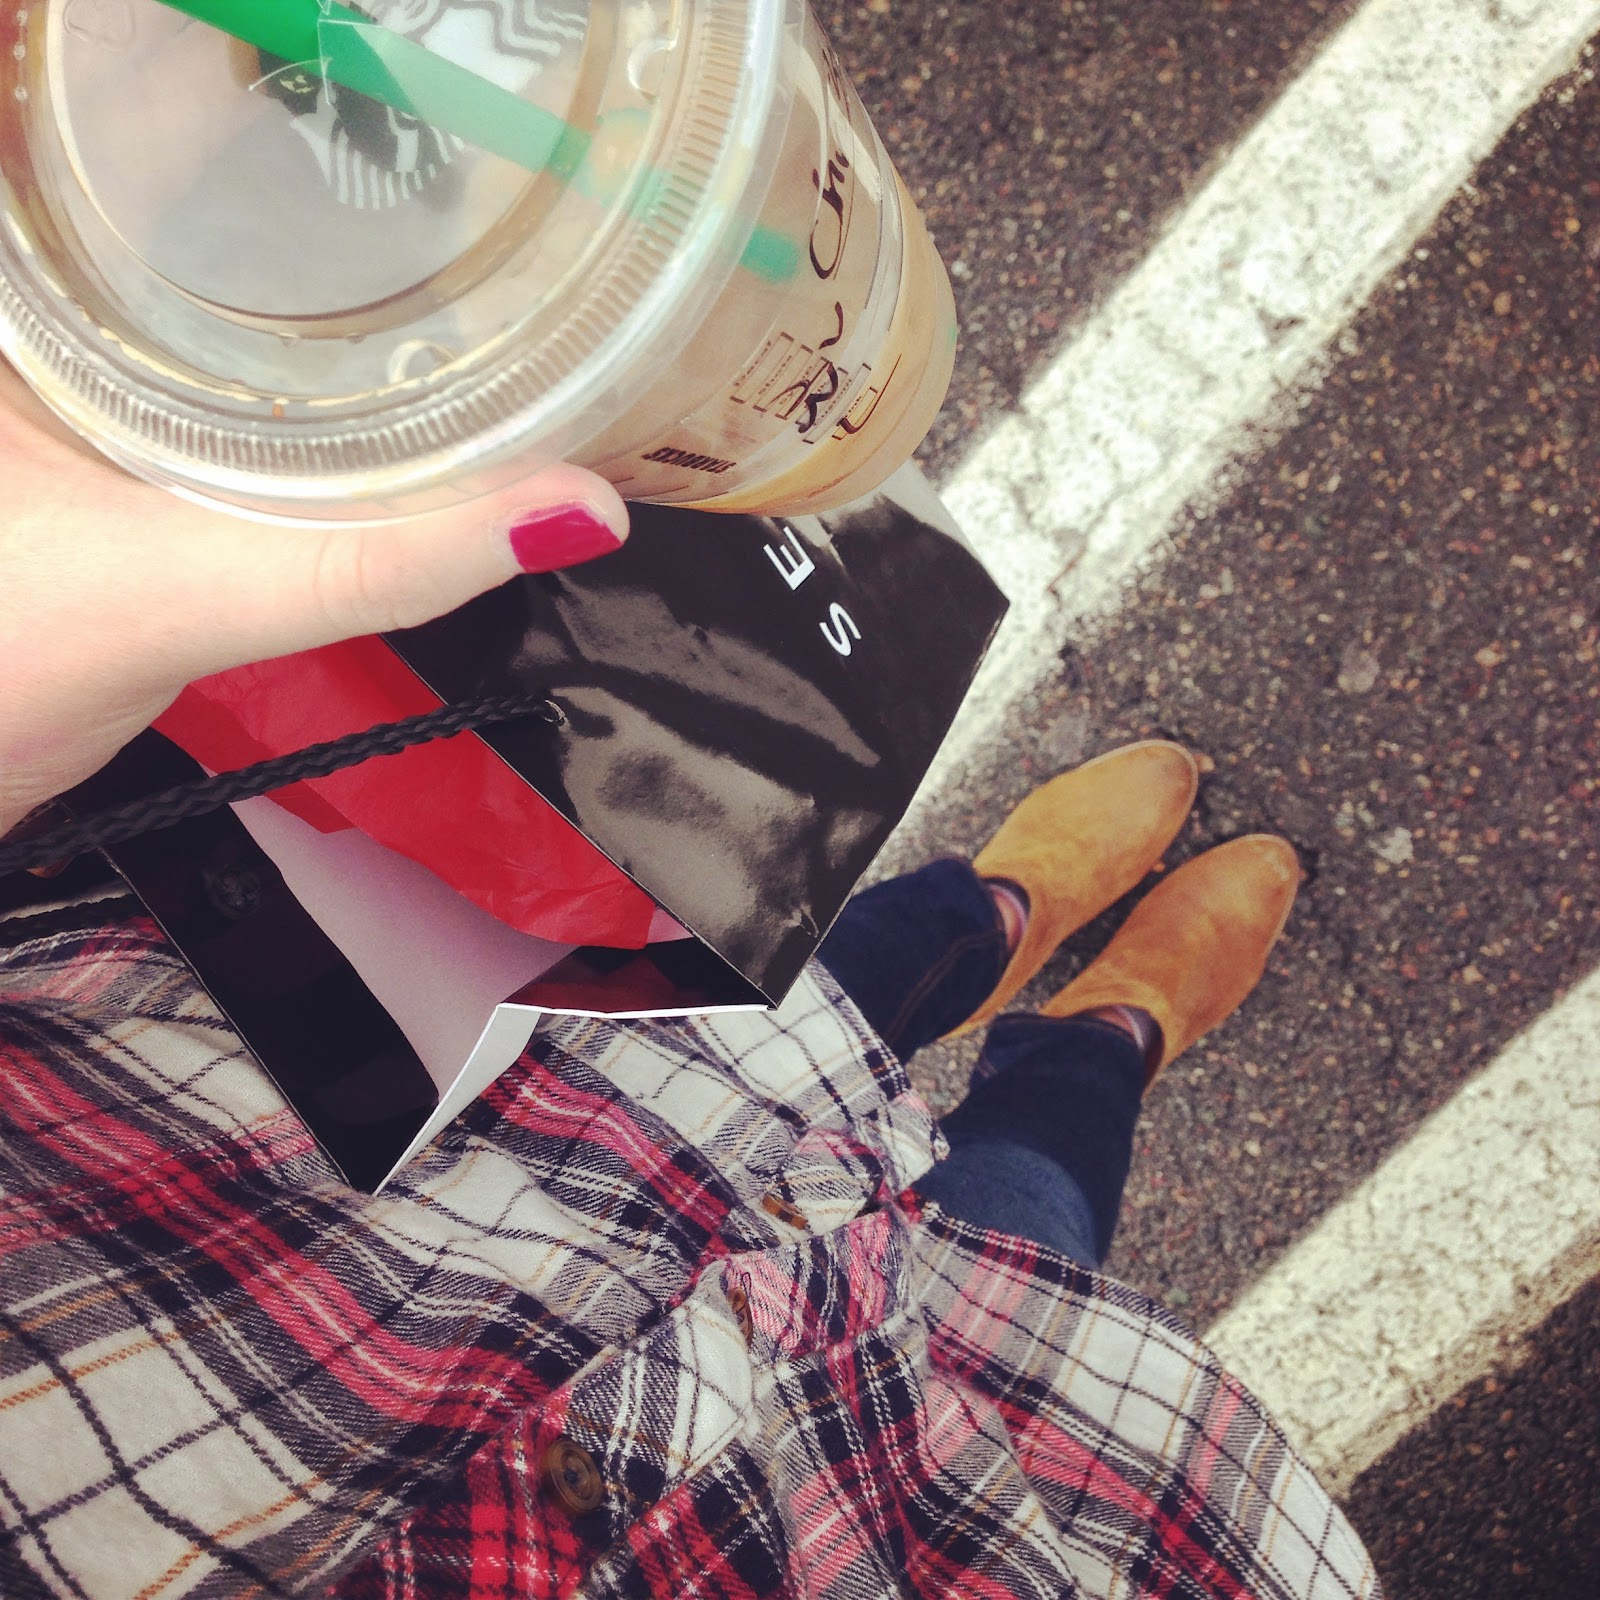 forever 21 flannel top, dolce vita booties, starbucks saturdays